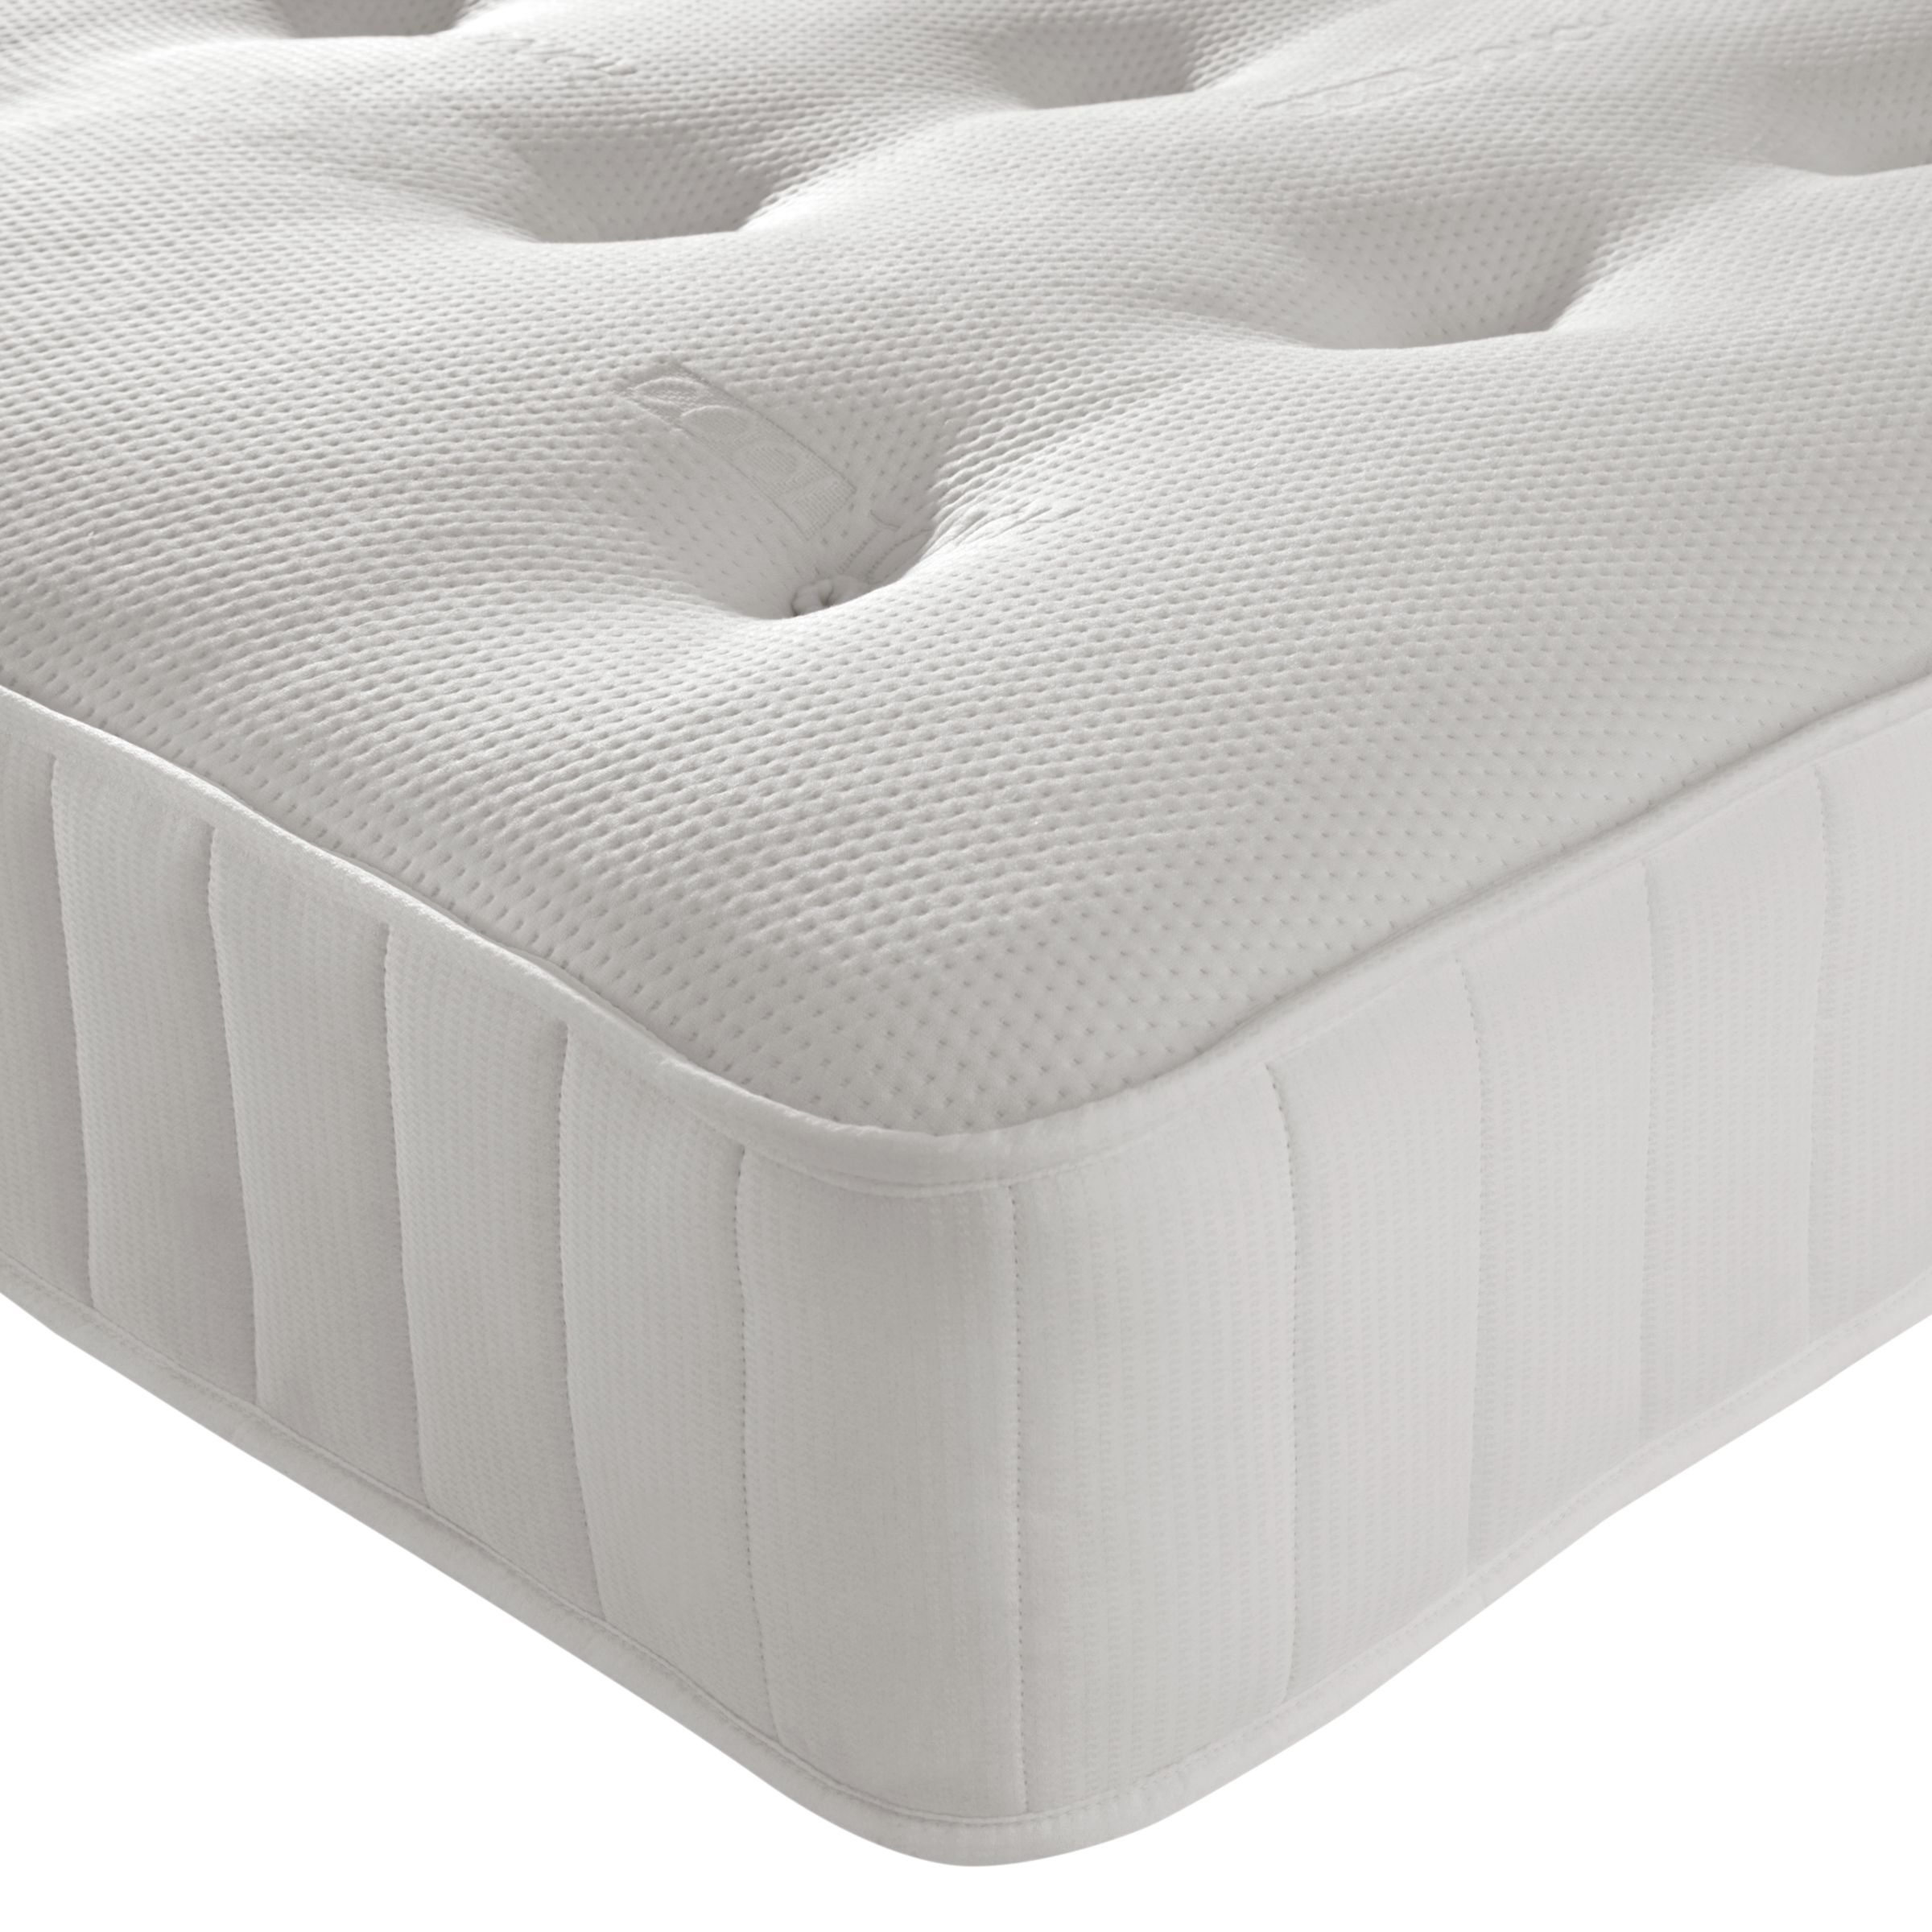 John Lewis The Basics Pocket Mattress, Kingsize